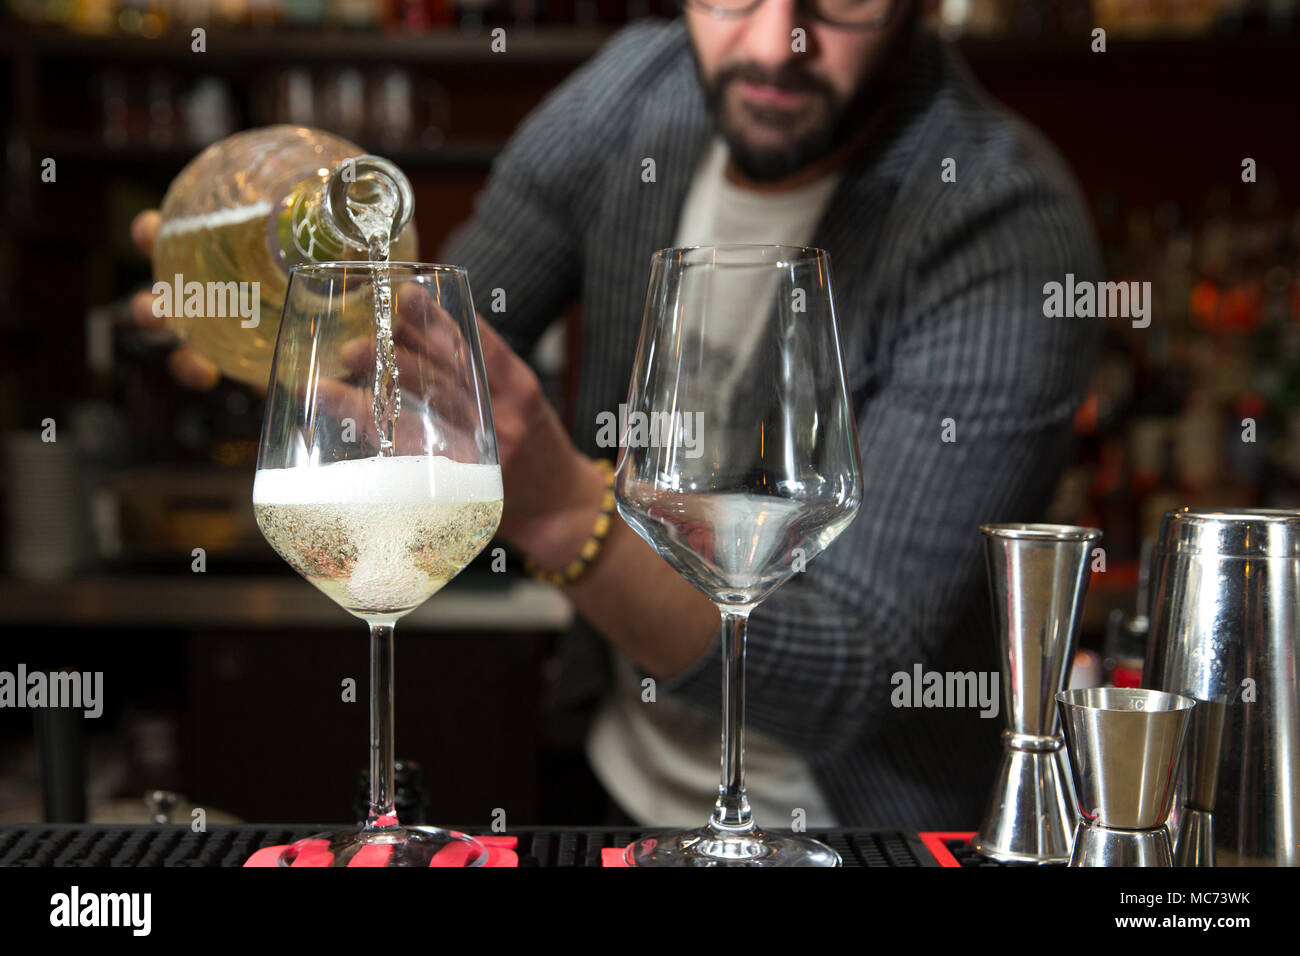 closeup of a barman working behind a bar counter, pouring prosecco in two wine glasses with focus on the glasses - Stock Image